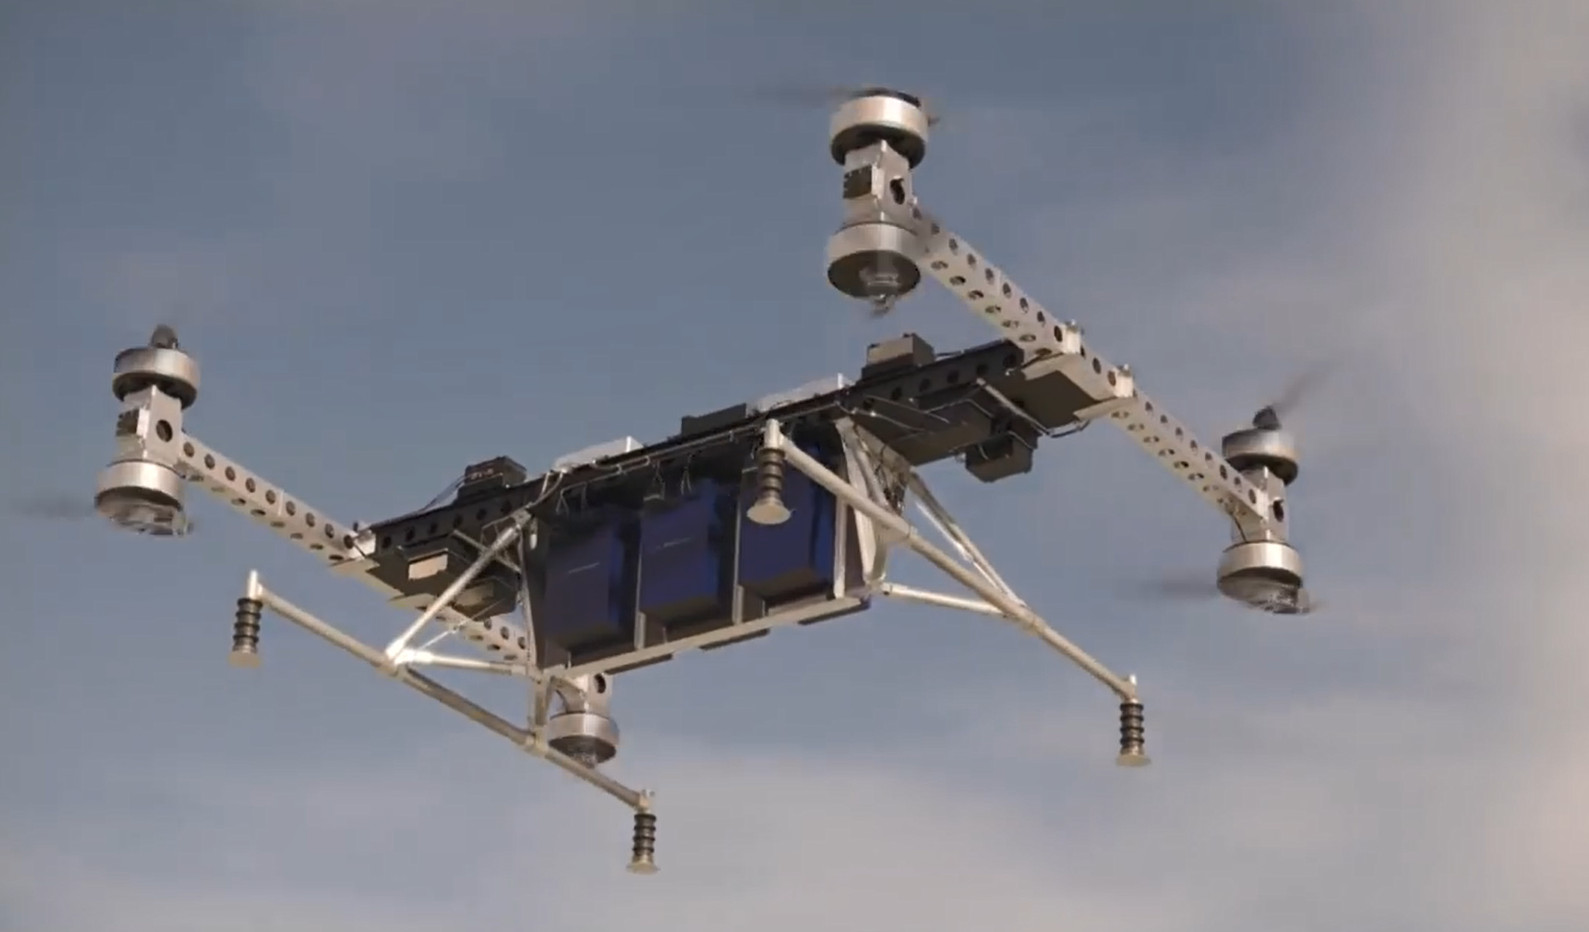 Boeing's cargo aerial vehicle (CAV) can haul payloads up to 500 lb (227 kg). Source: Boeing